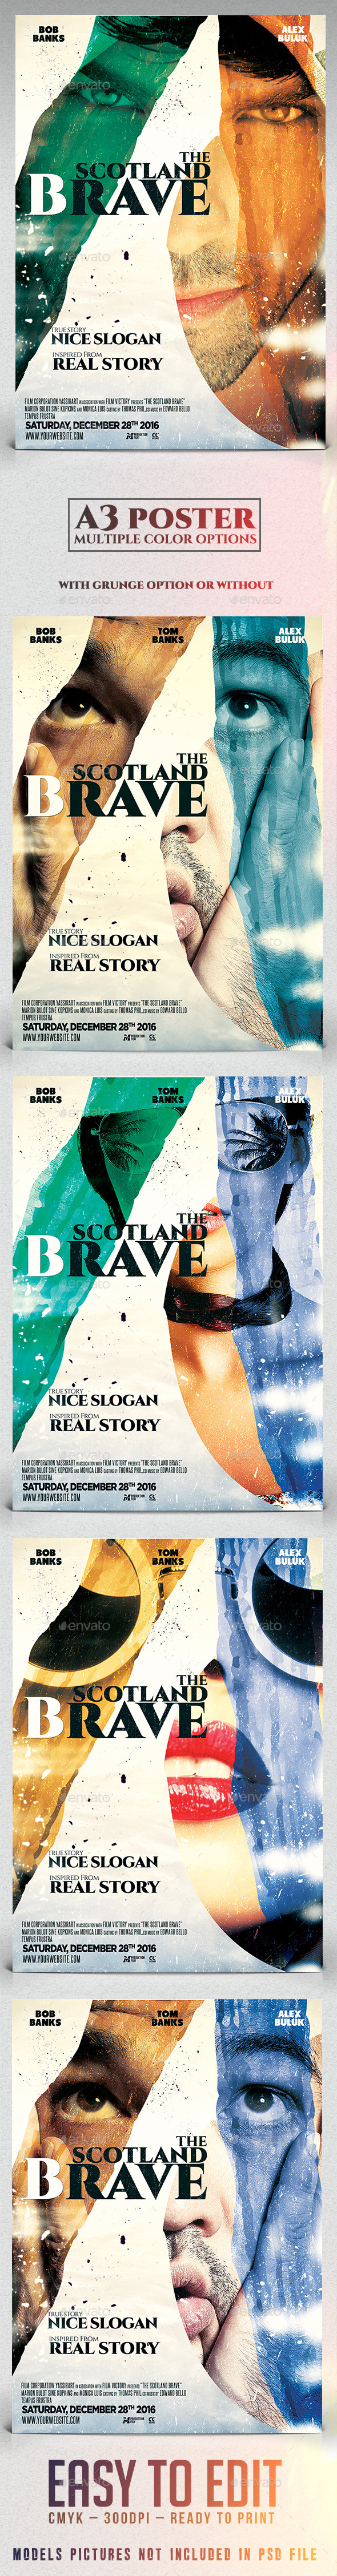 GraphicRiver A3 Poster Film Template The Scotland Brave 11578599